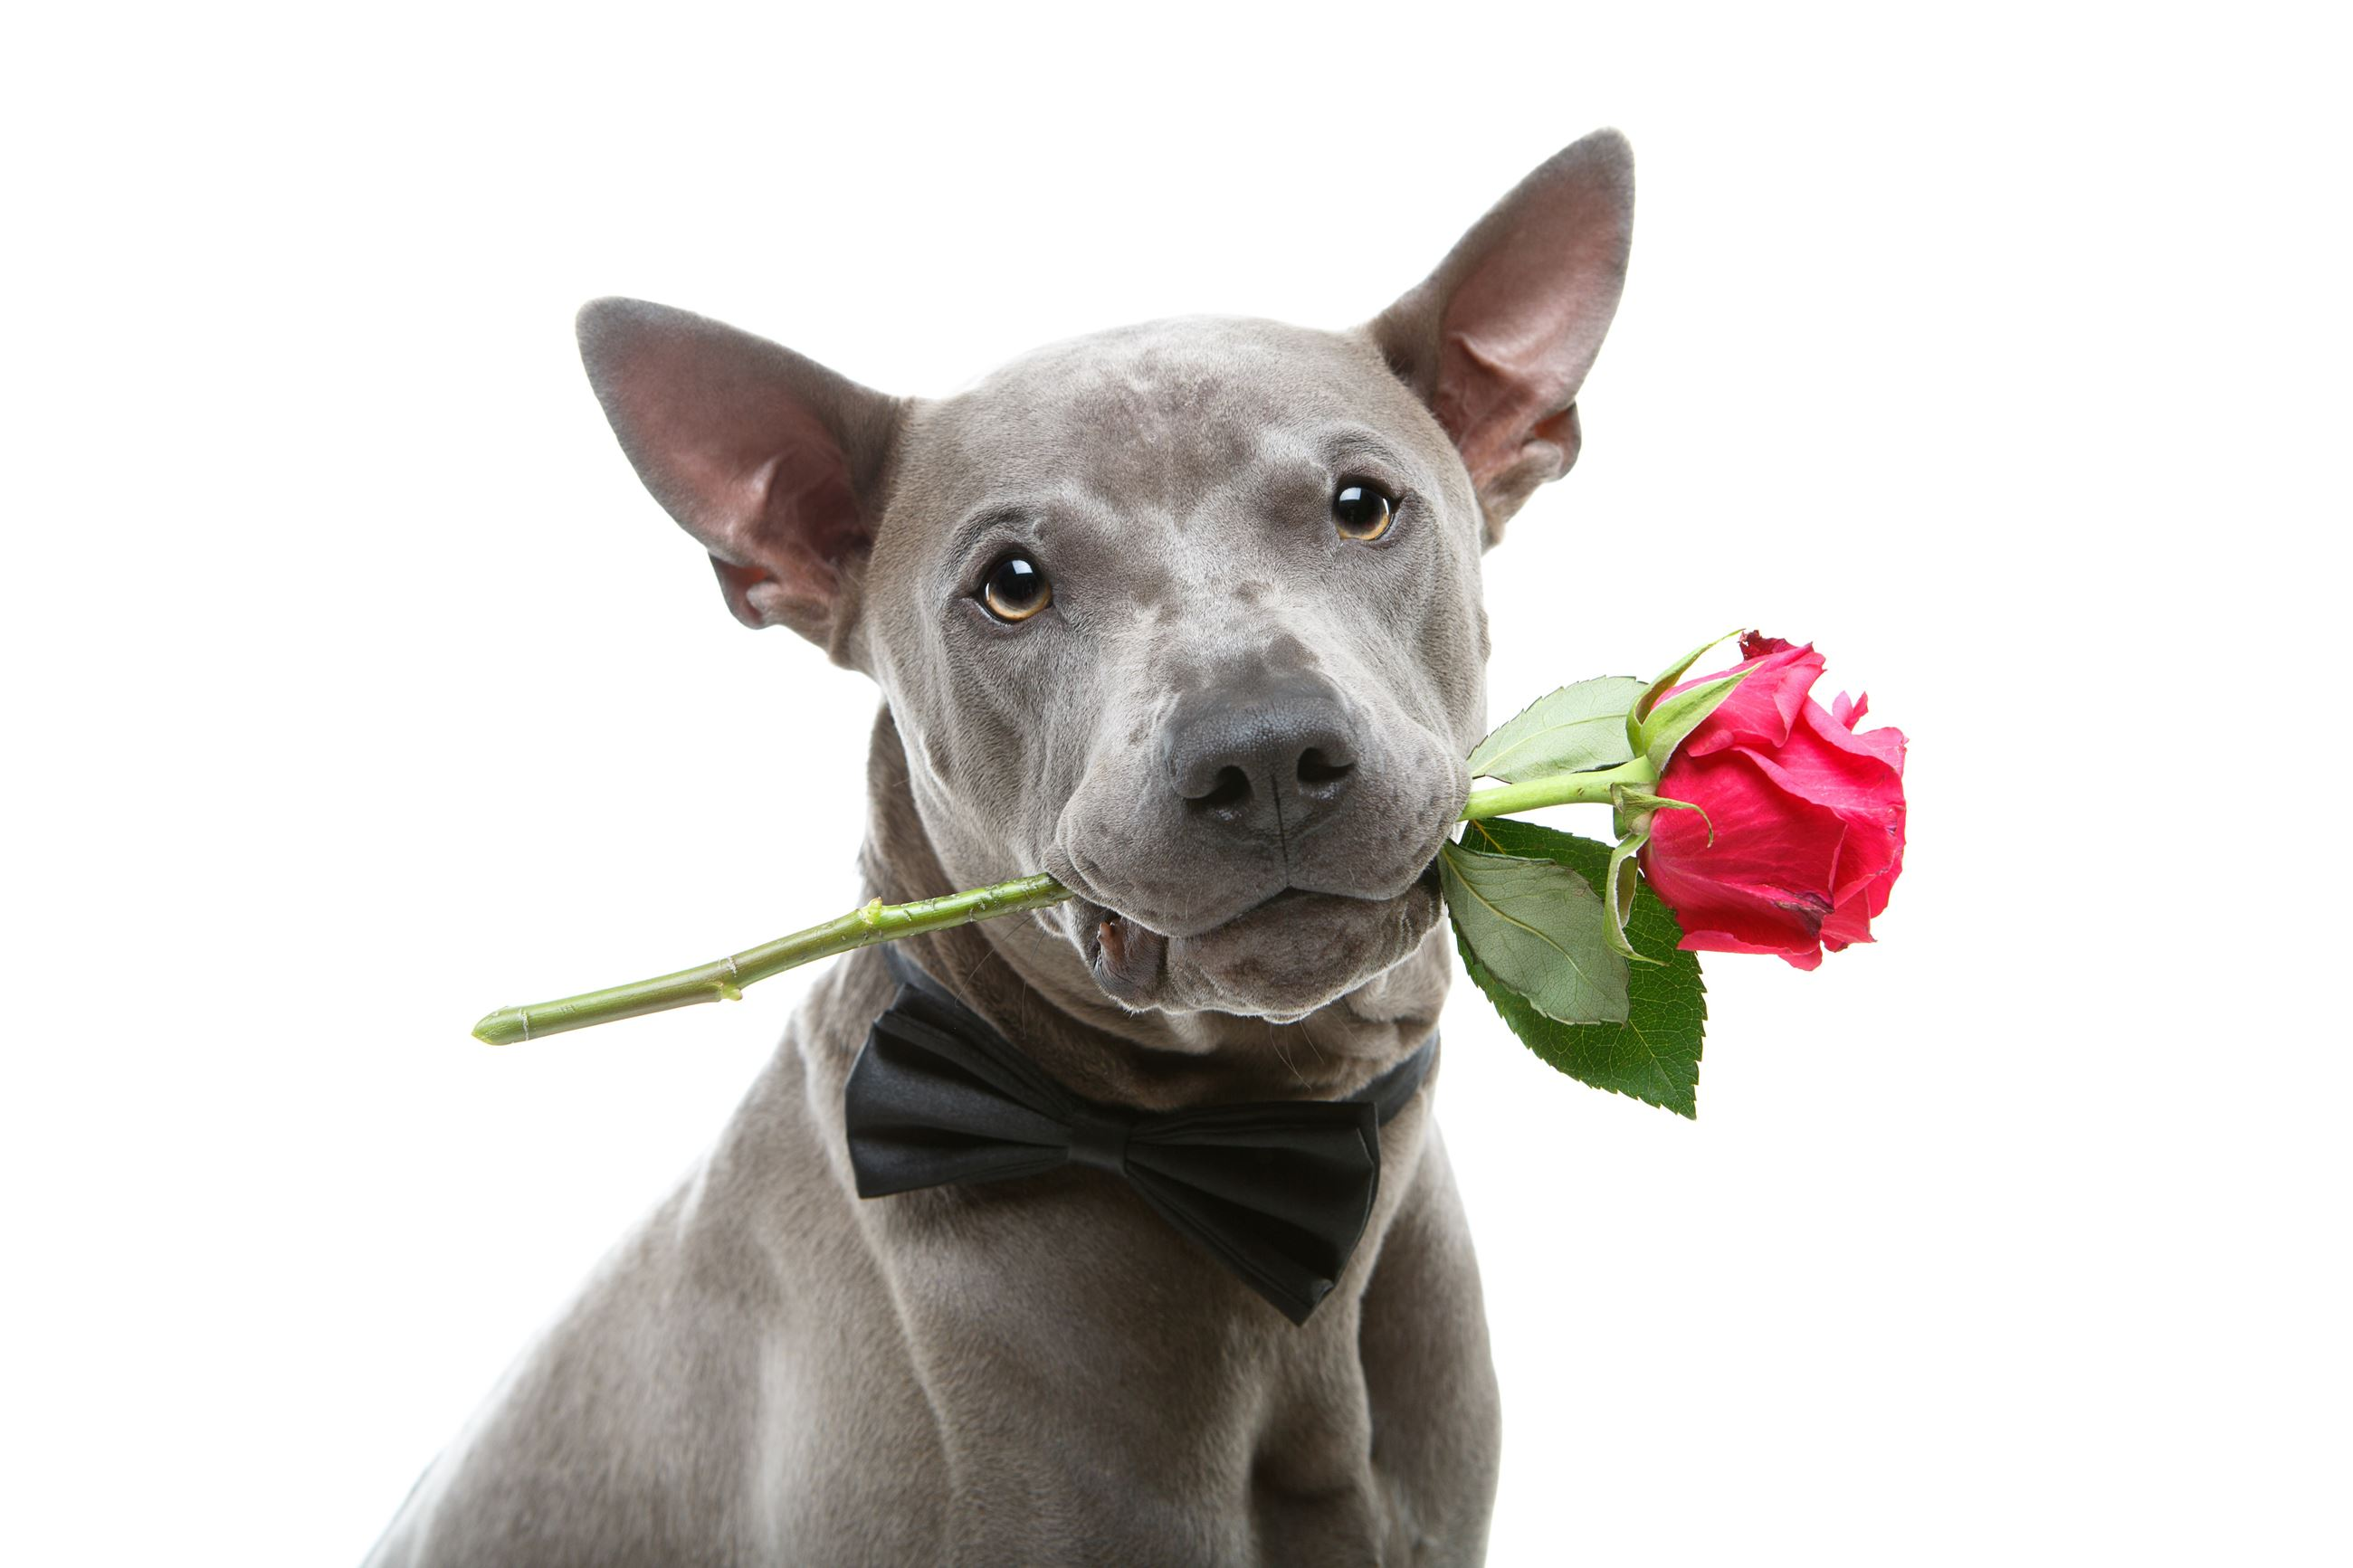 Dog with Rose in his Mouth